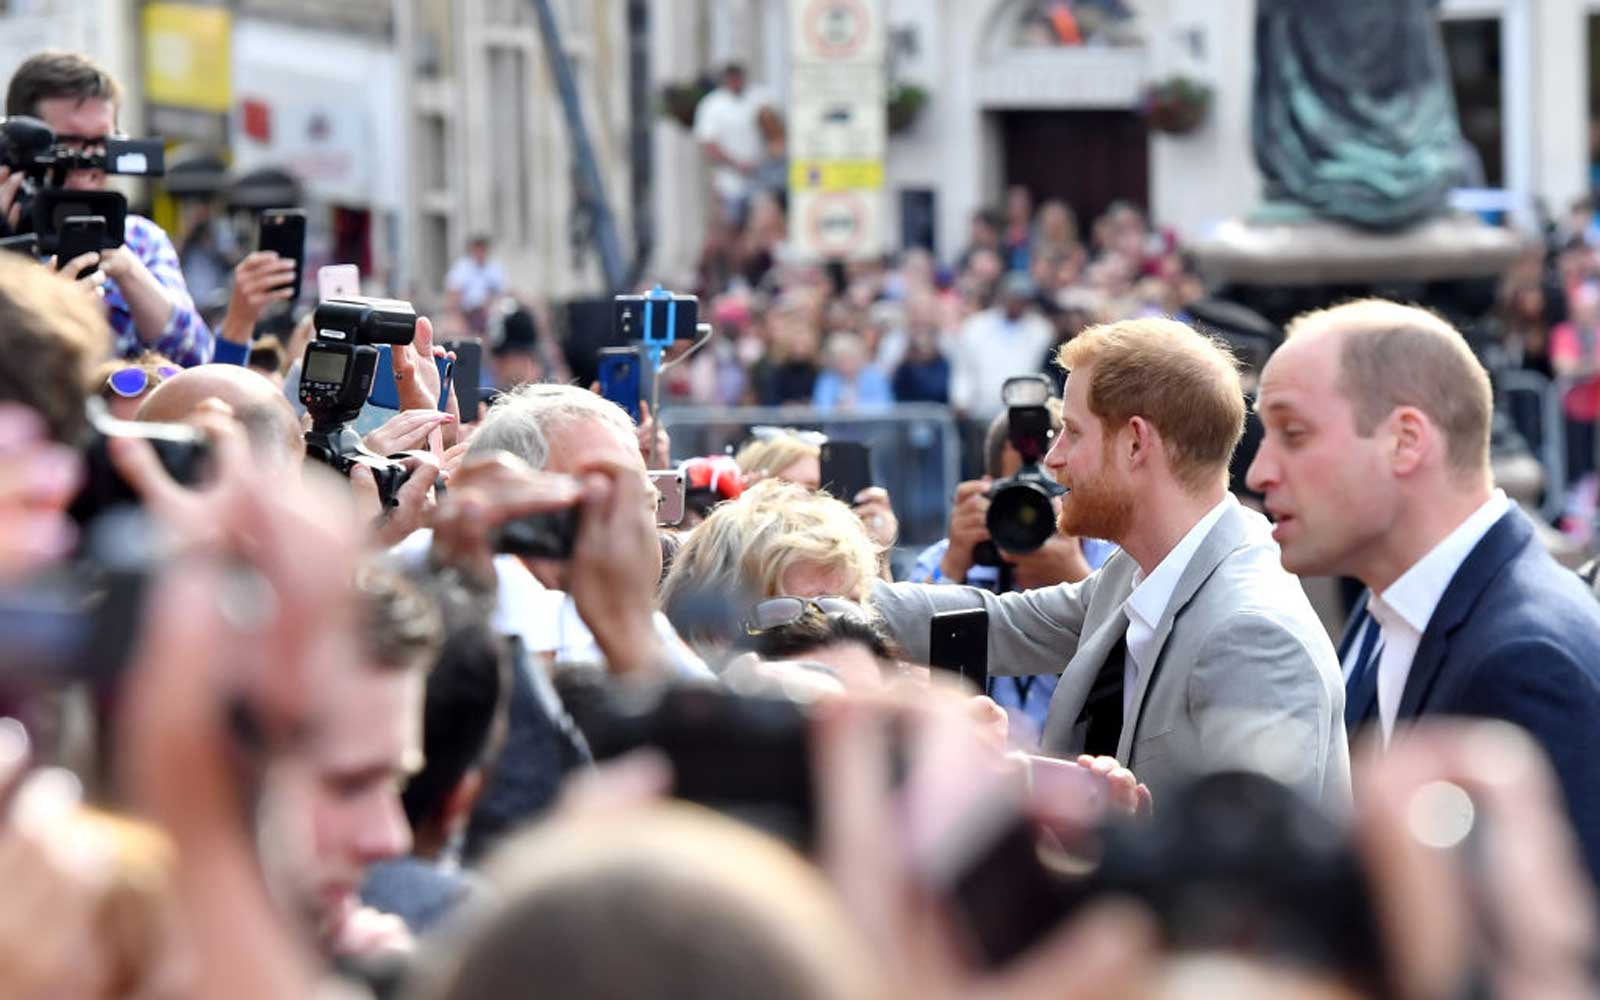 Prince Harry And Prince William Meet The Public During A Pre Wedding Walkabout In Windsor